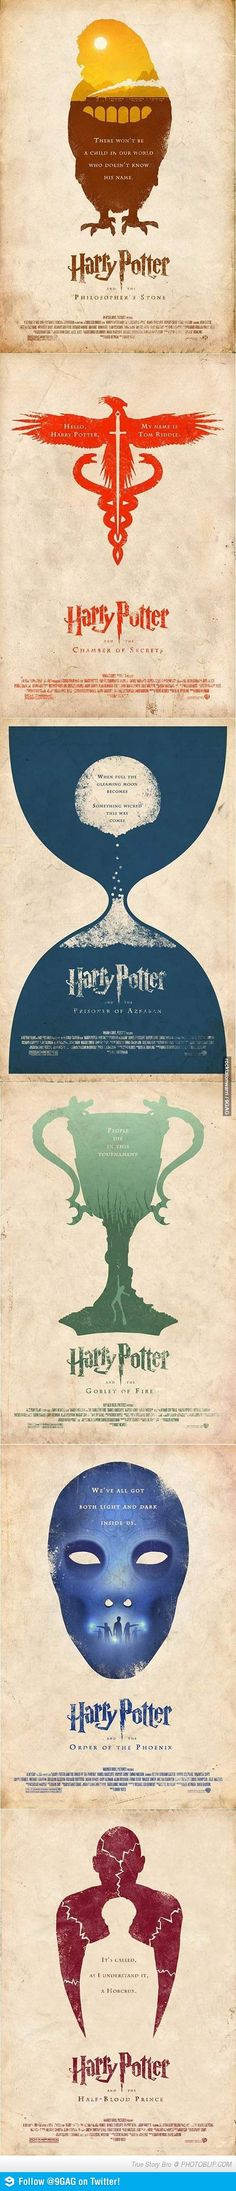 Alternate HP Posters  9gag